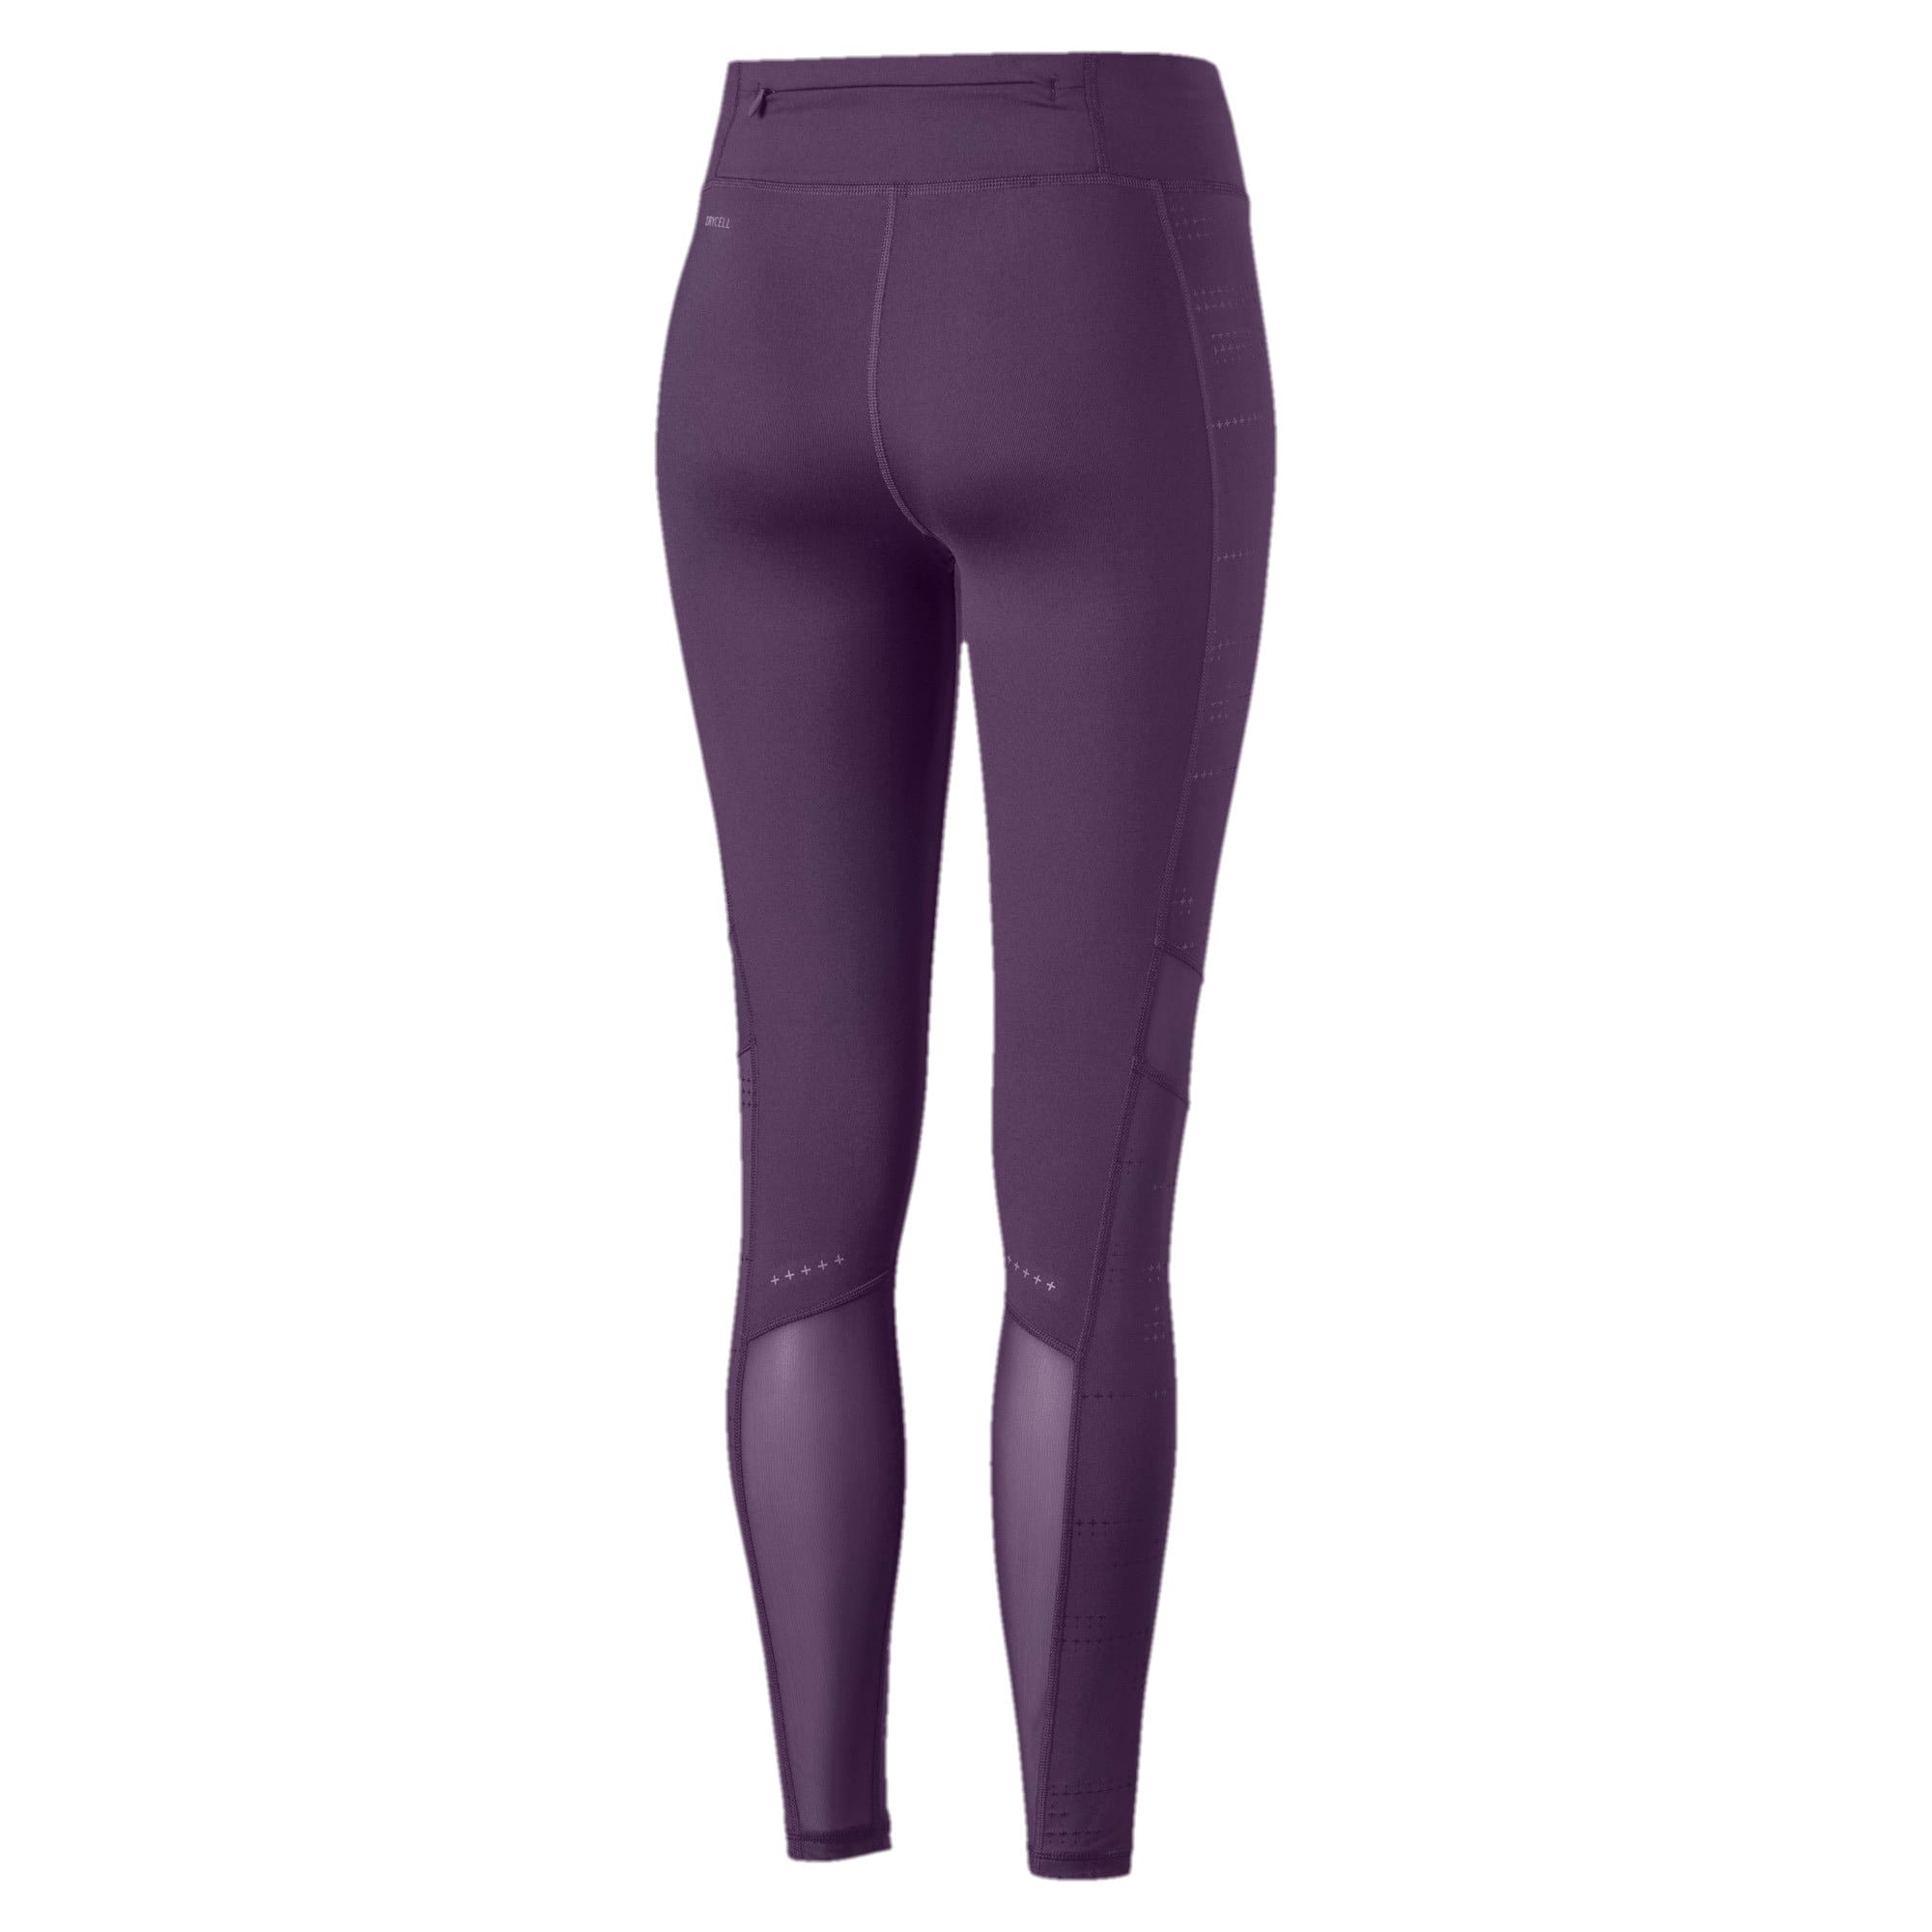 Thumbnail 3 of Ignite Women's Running Leggings, Indigo, medium-IND